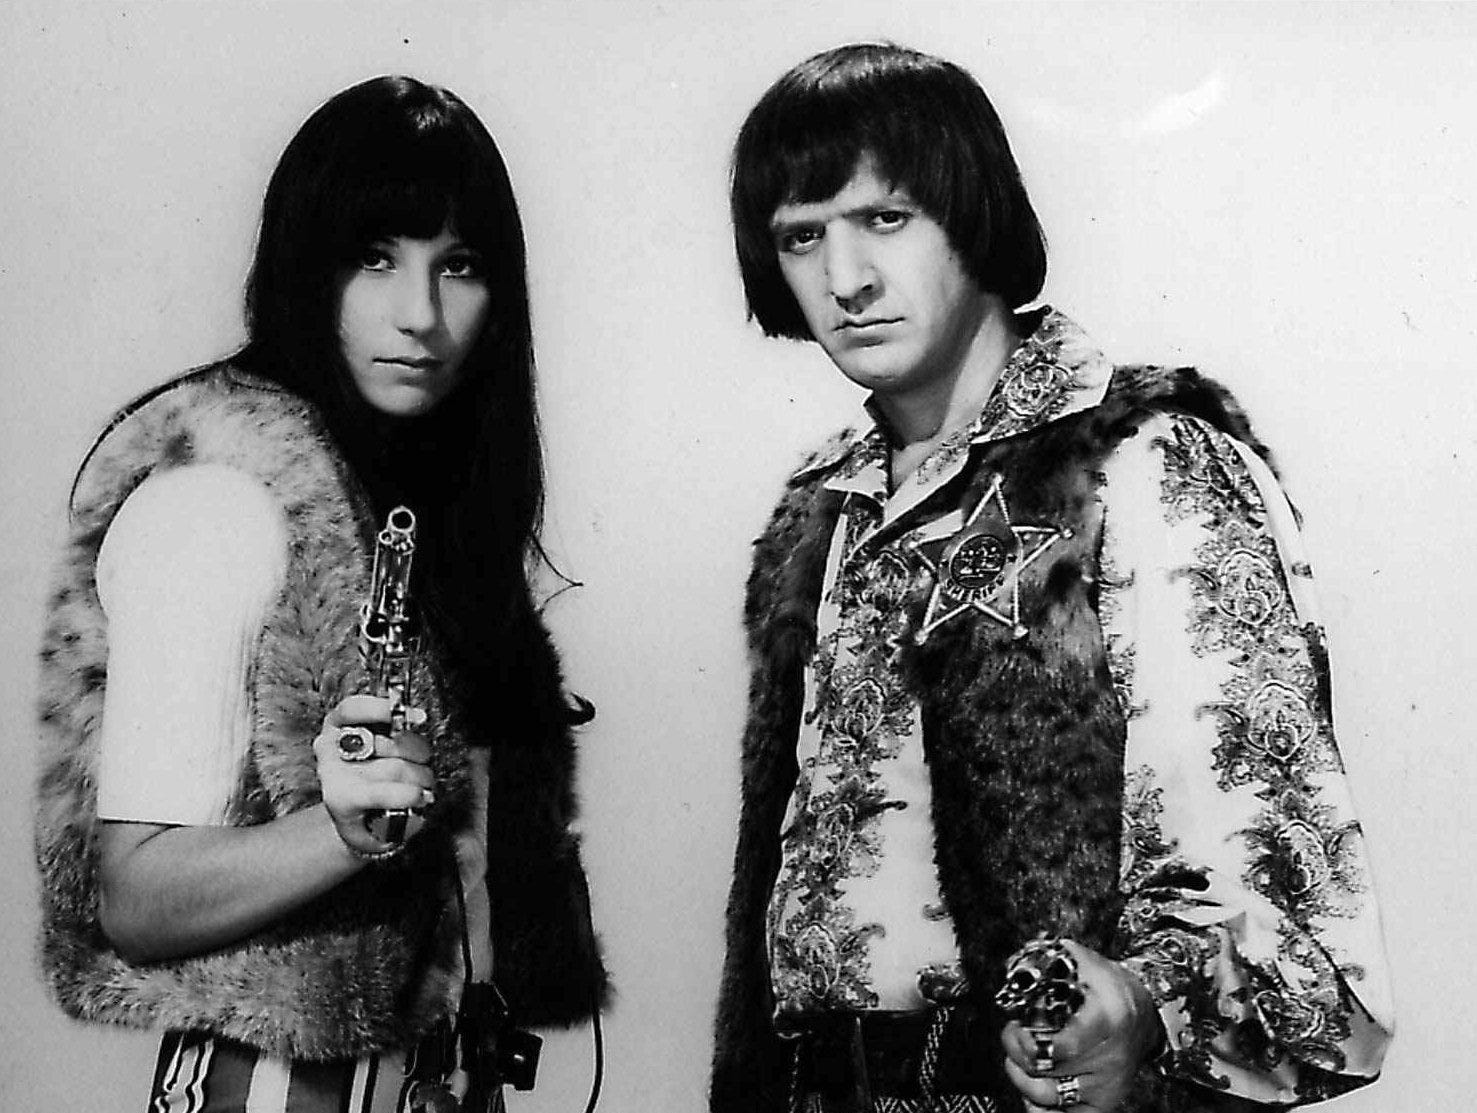 FILE --Sonny and Cher are shown in this May, 1966 file photo. Sonny Bono was killed in an apparent skiing accident in Lake Tahoe, Calif. on Monday, Jan. 5, 1998. He was 62. (AP Photo/file) ORG XMIT: NY133